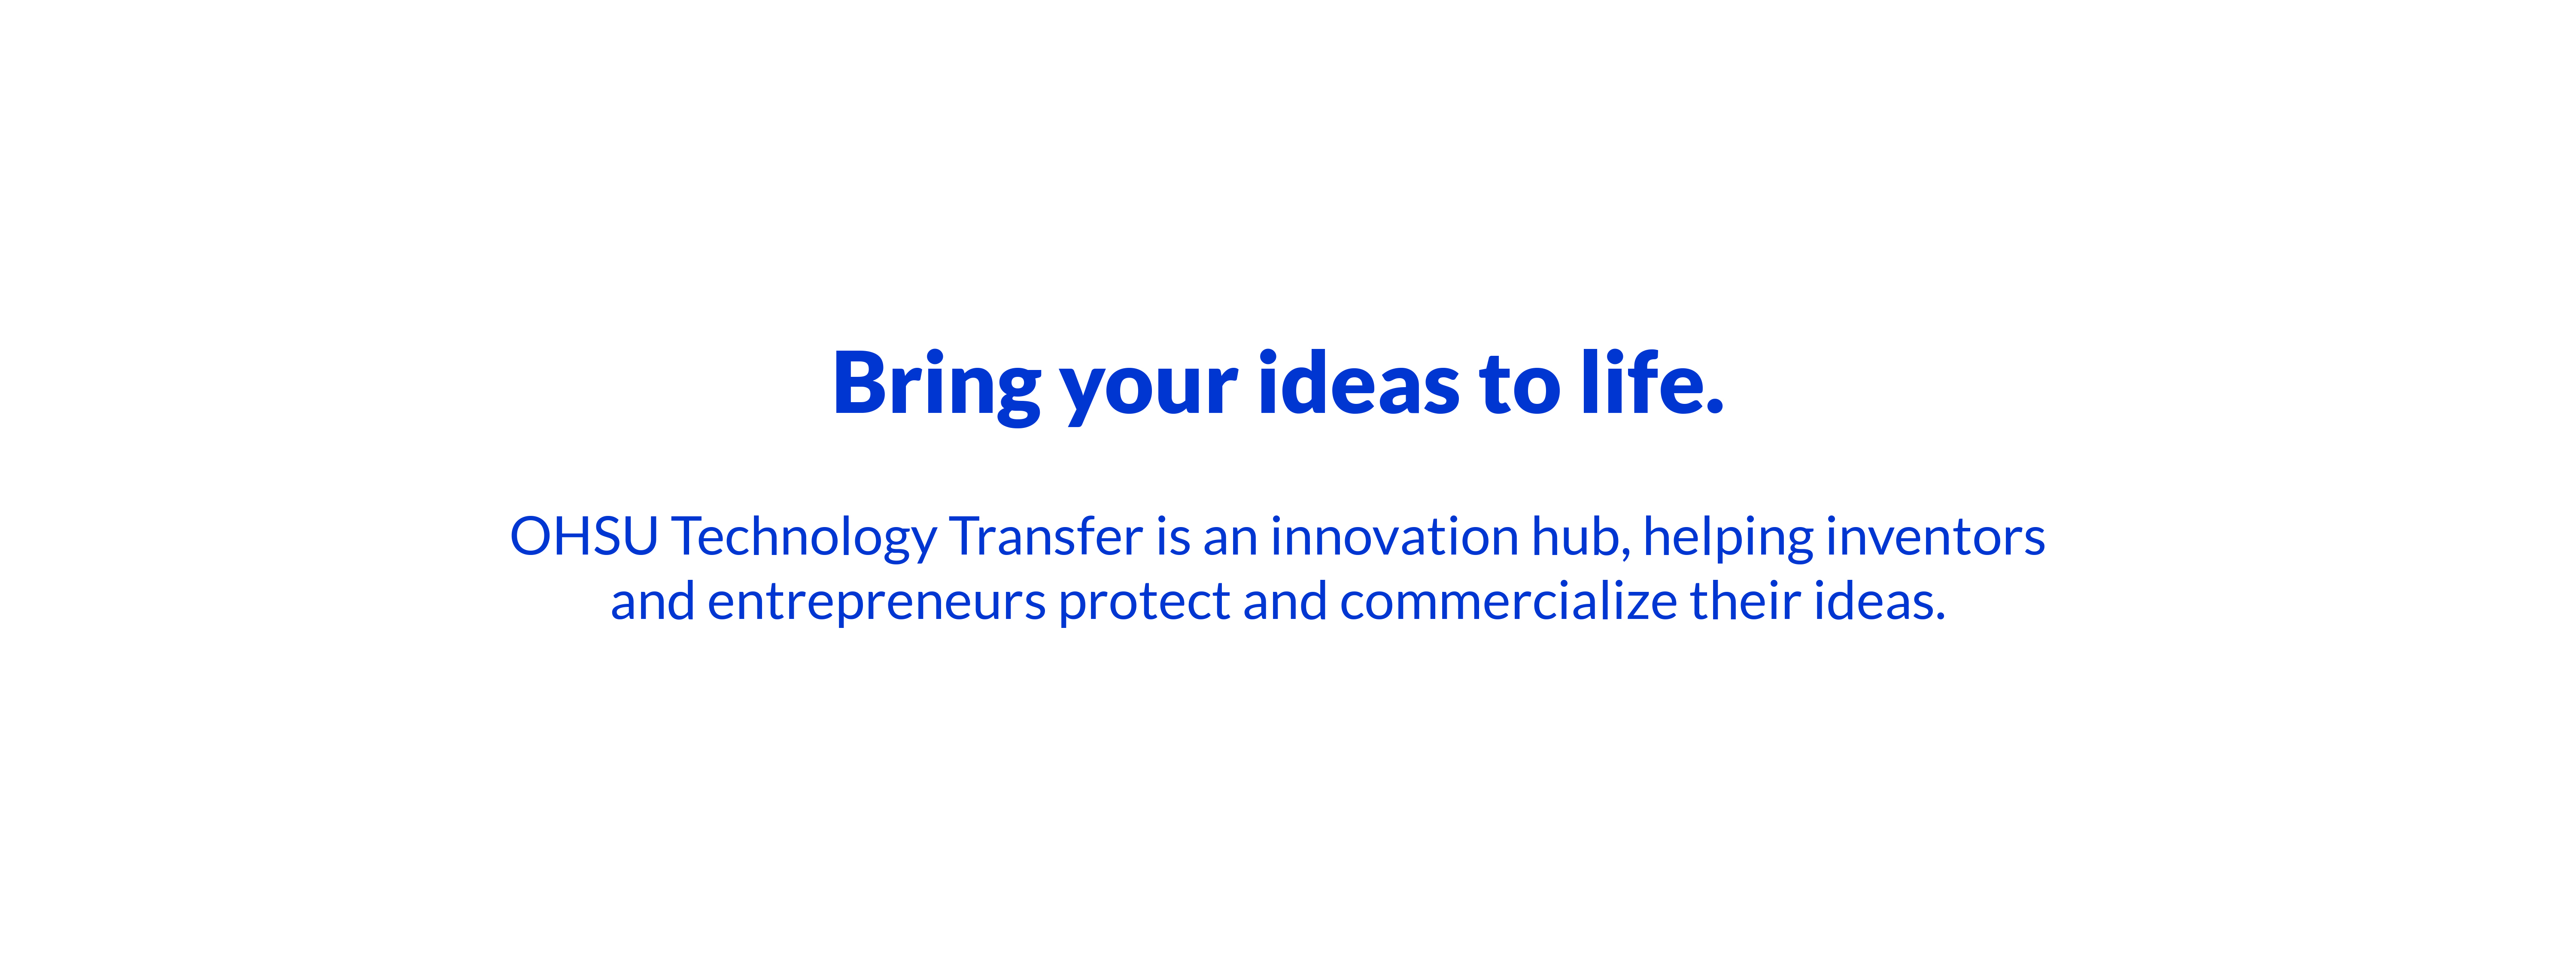 Bring your ideas to life. OHSU Technology Transfer is an innovation hub, helping commercialize their ideas